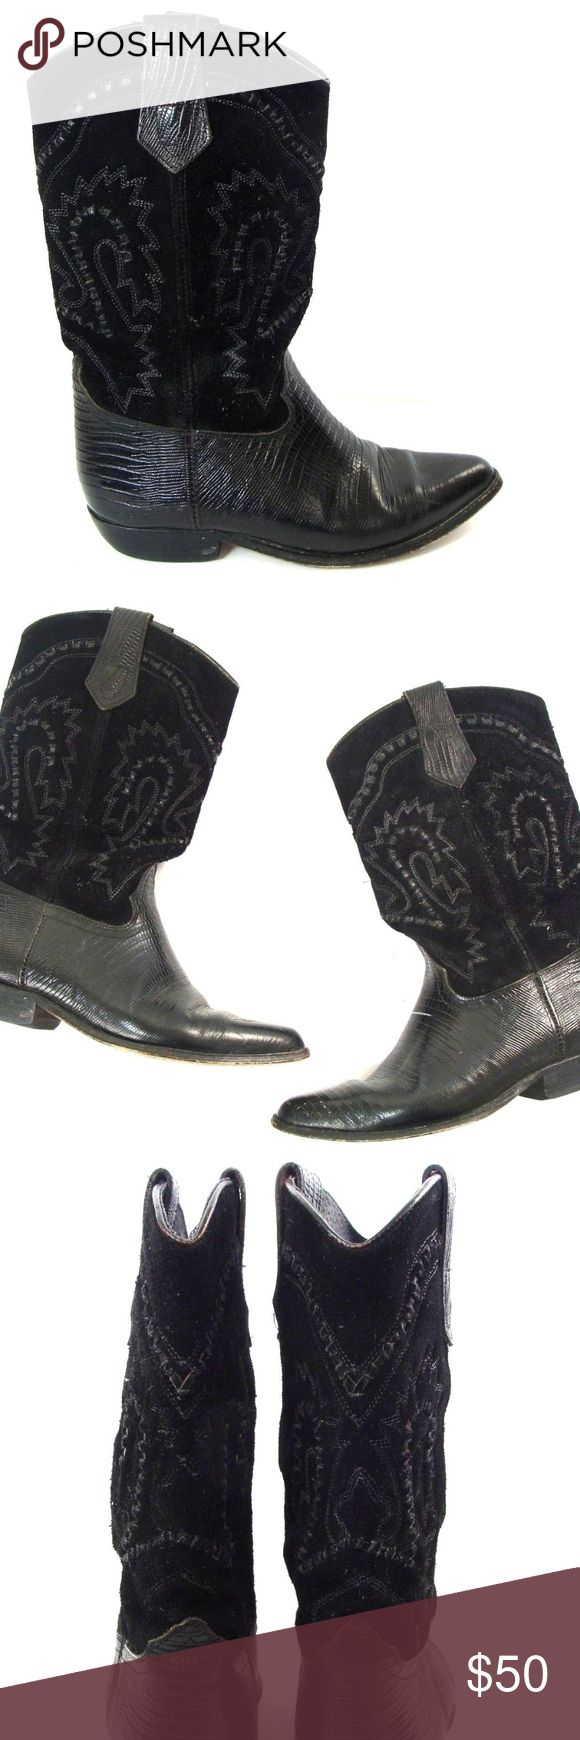 seychelles black suede cowboy boots Seychelles Women's Black Suede Leather Western Cowboy Boots Made in Mexico  Size 6.5 Some wear on bottom soles and minor scratches in leather upper. Otherwise, great pre-owned condition. Seychelles Shoes Combat & Moto Boots